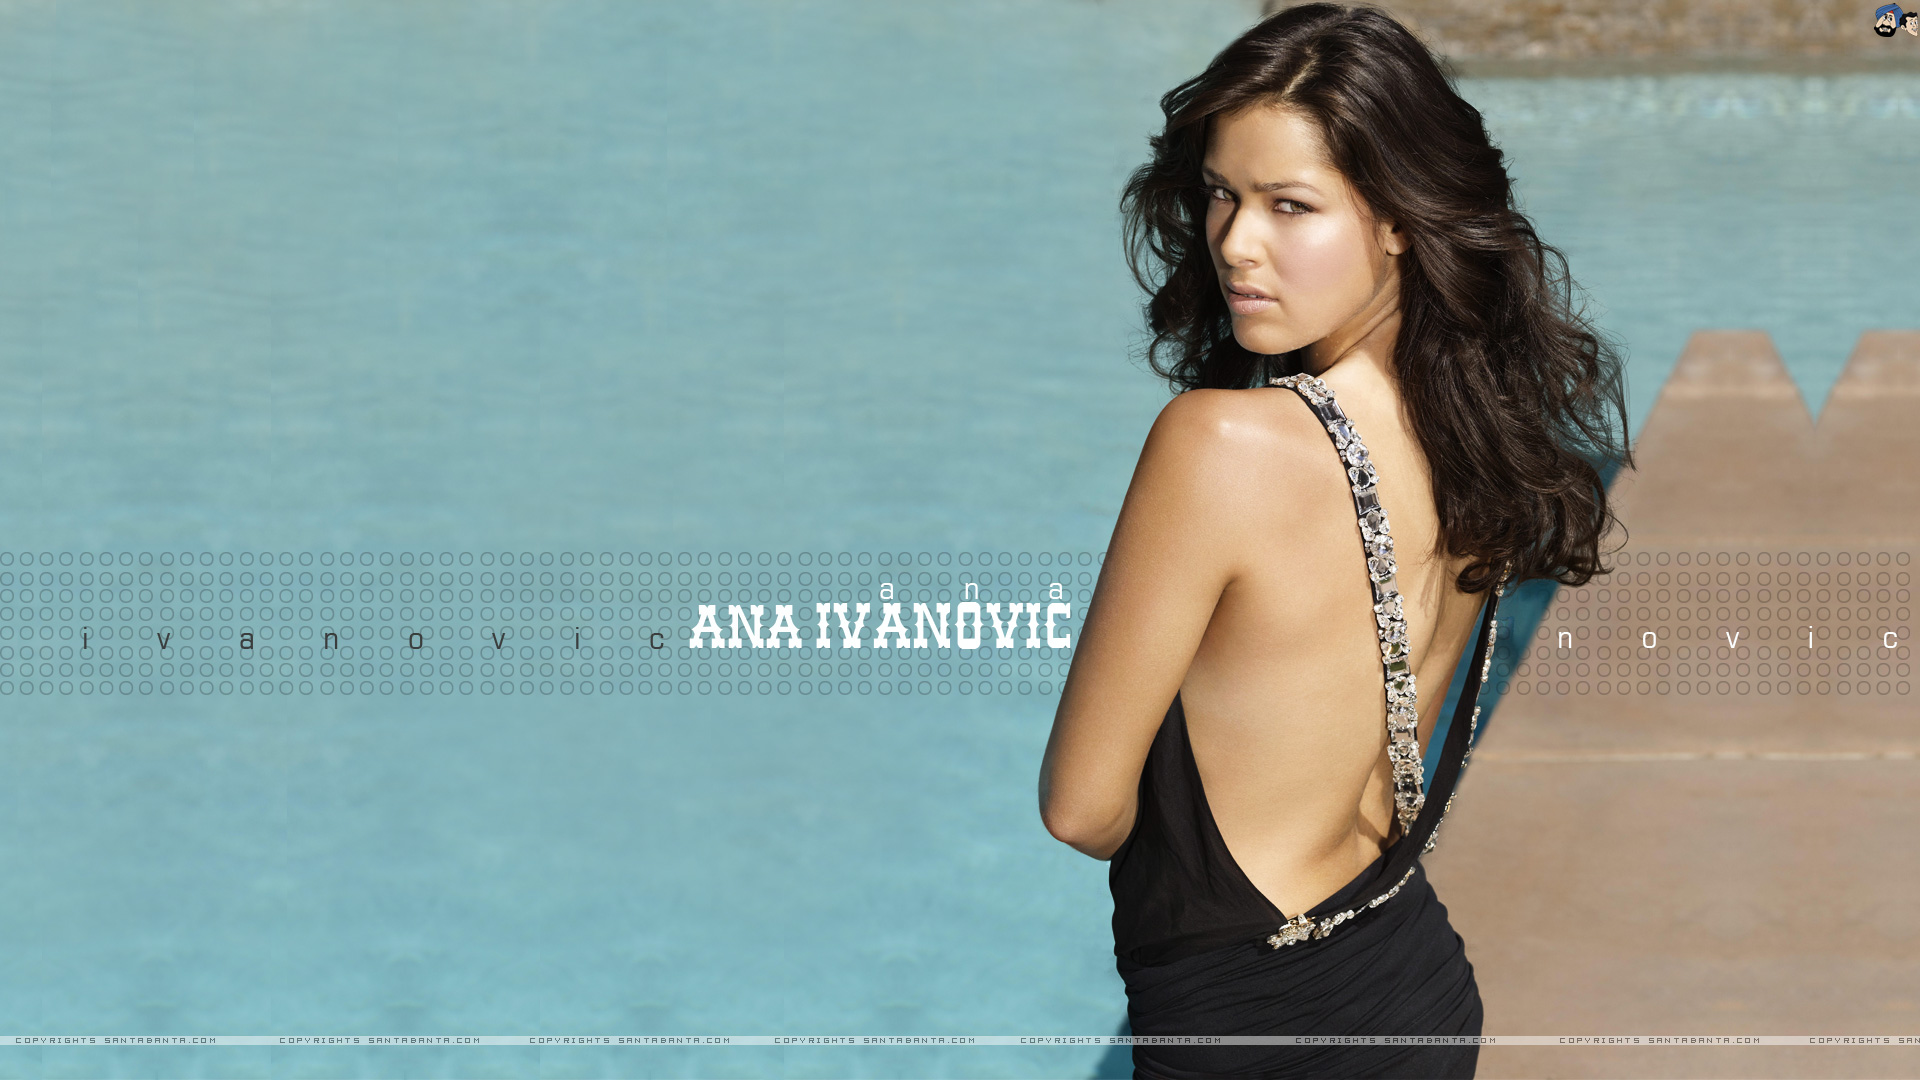 Ana-Ivanovic-1920x1080-wallpaper-wp3602449-1